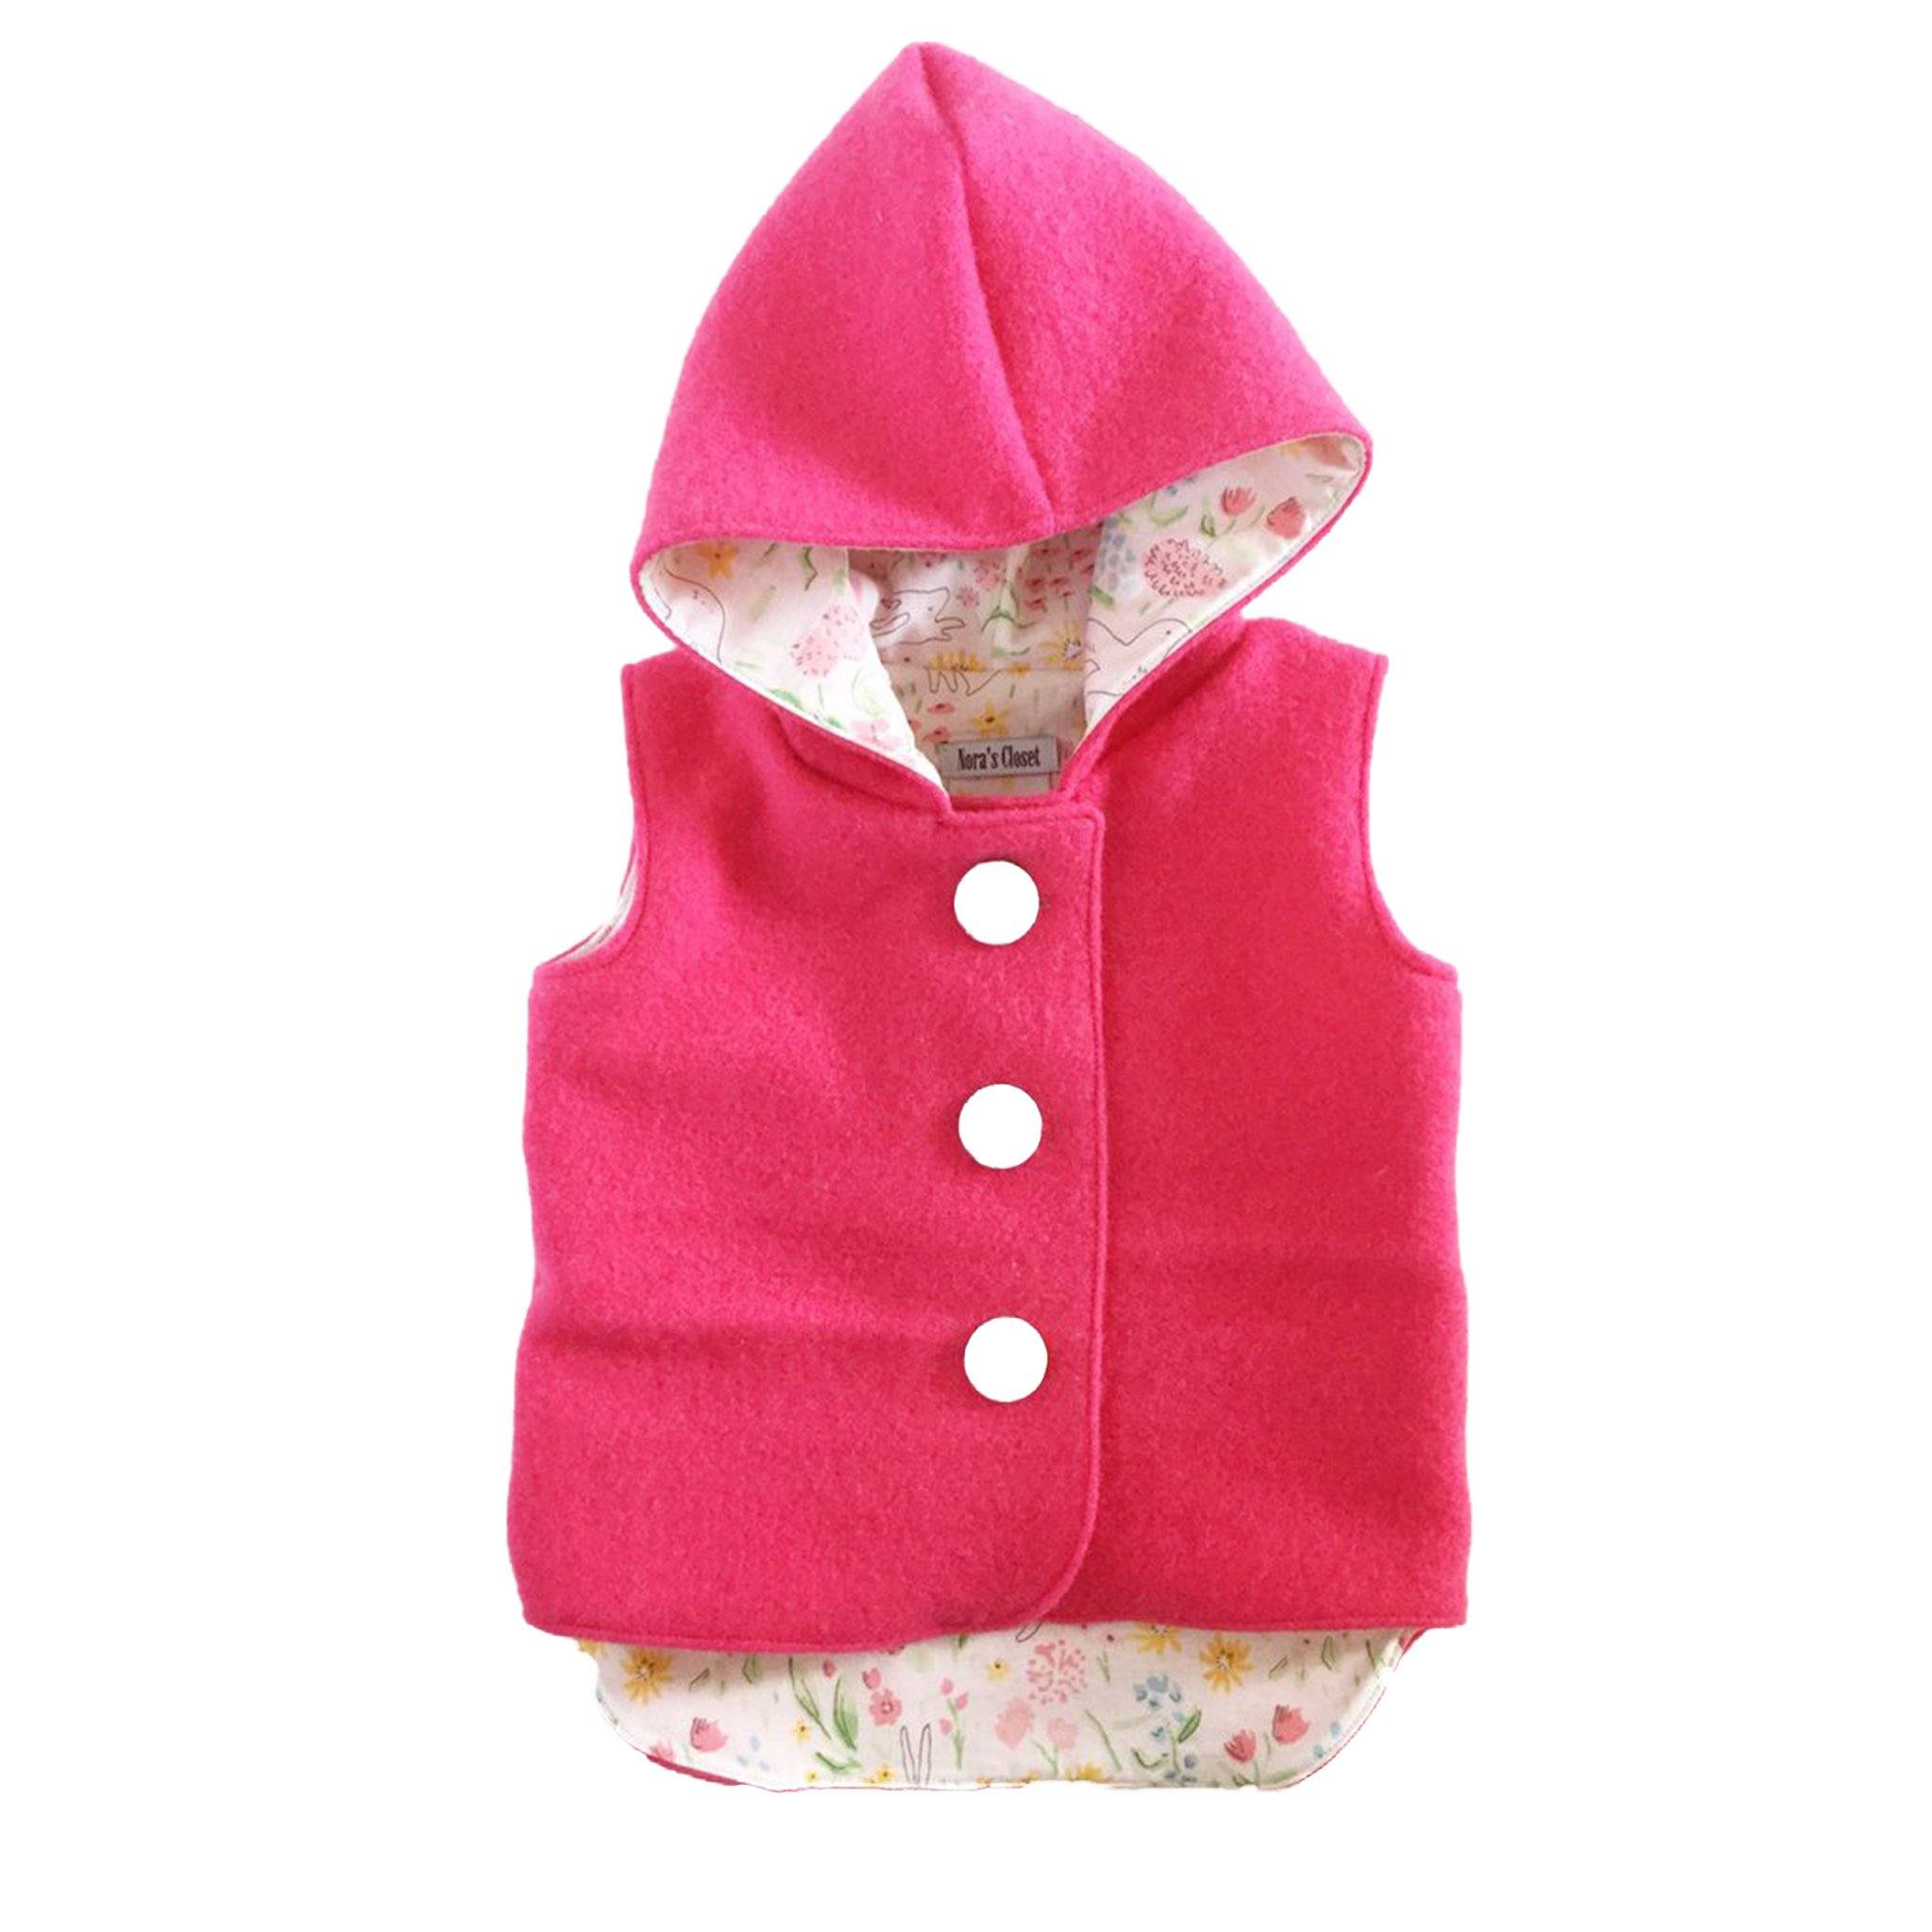 Vest - Pixie Hood - Pink with Flower Lining